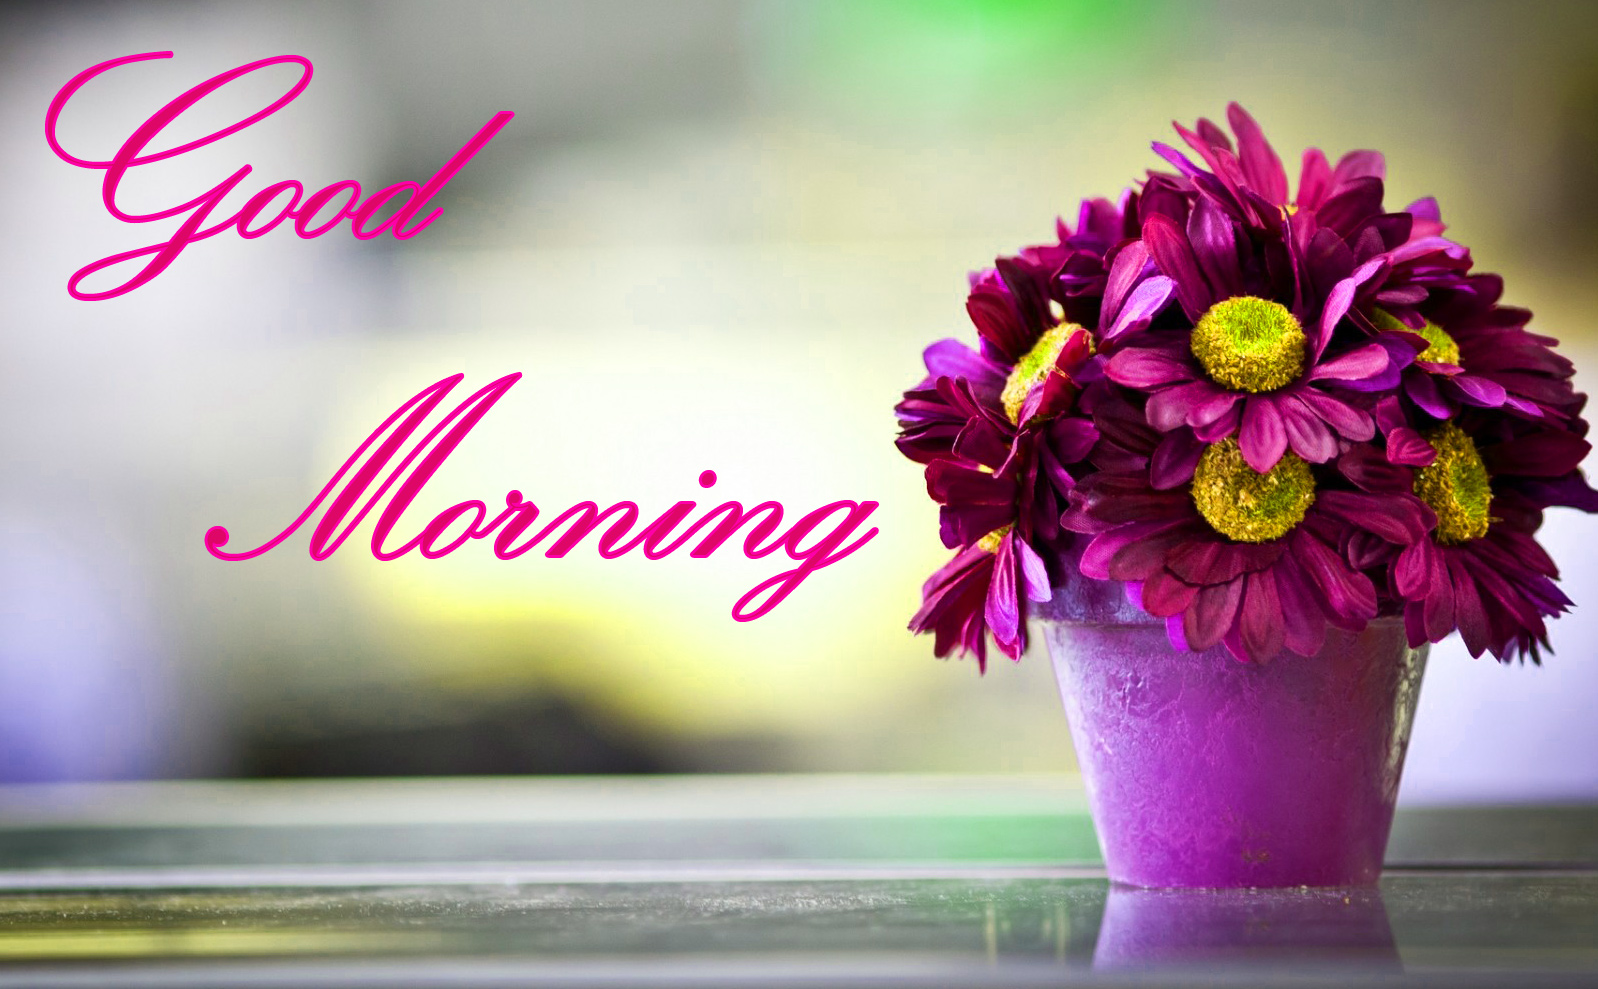 Good Morning Images Wallpaper Photo Pictures Pics Download for Whatsapp & Facebook